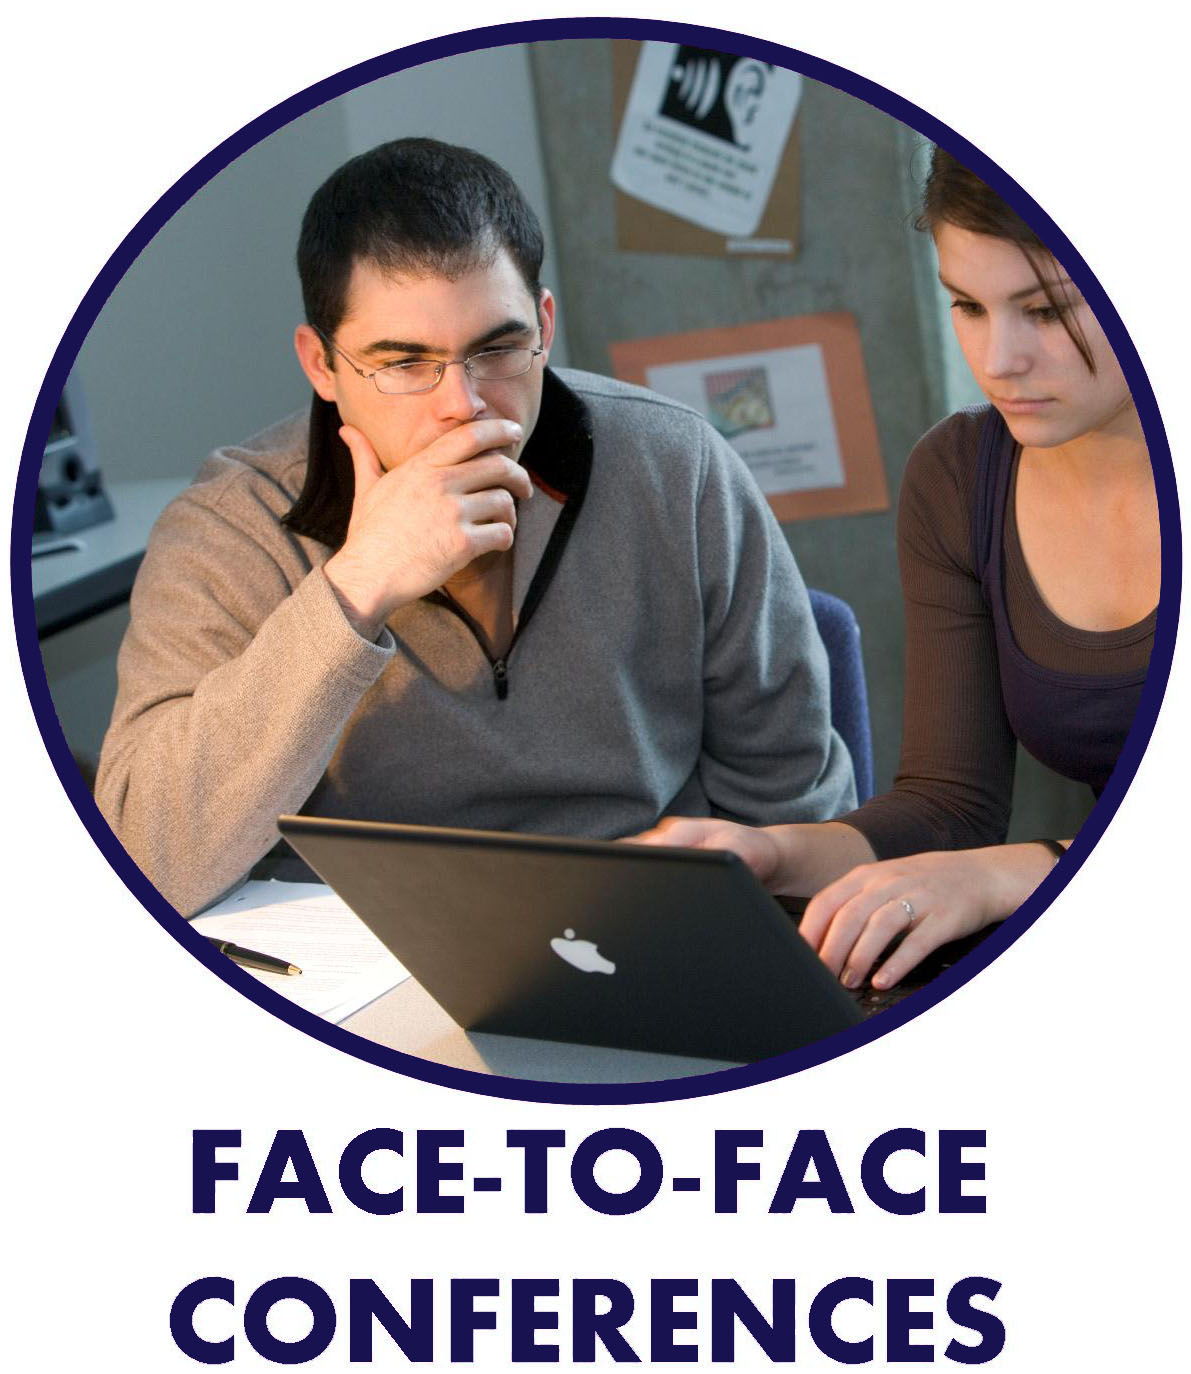 face to face conferences